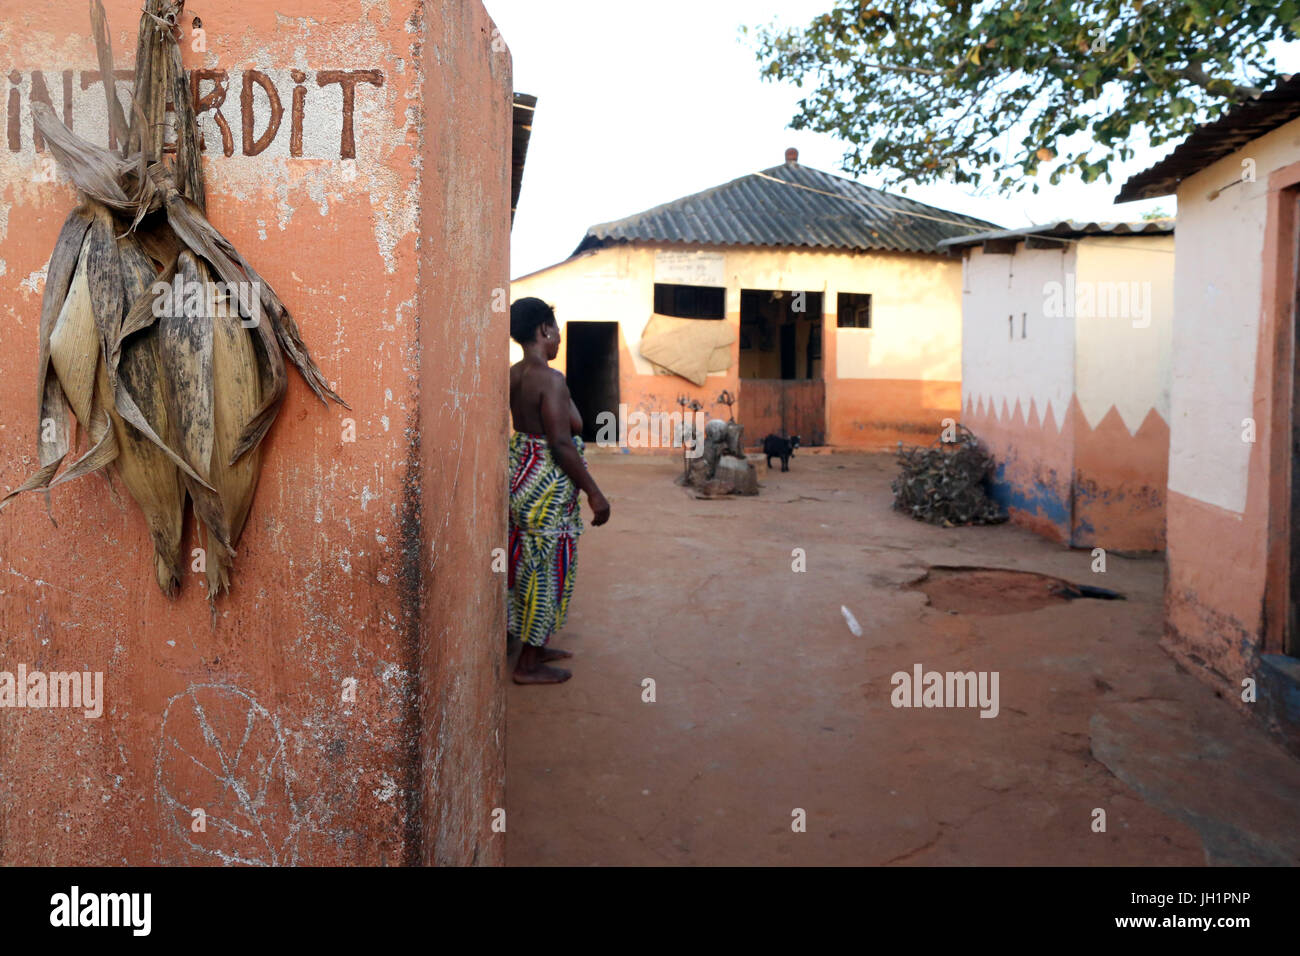 Voodoo convent. Togoville, Togo. Stock Photo